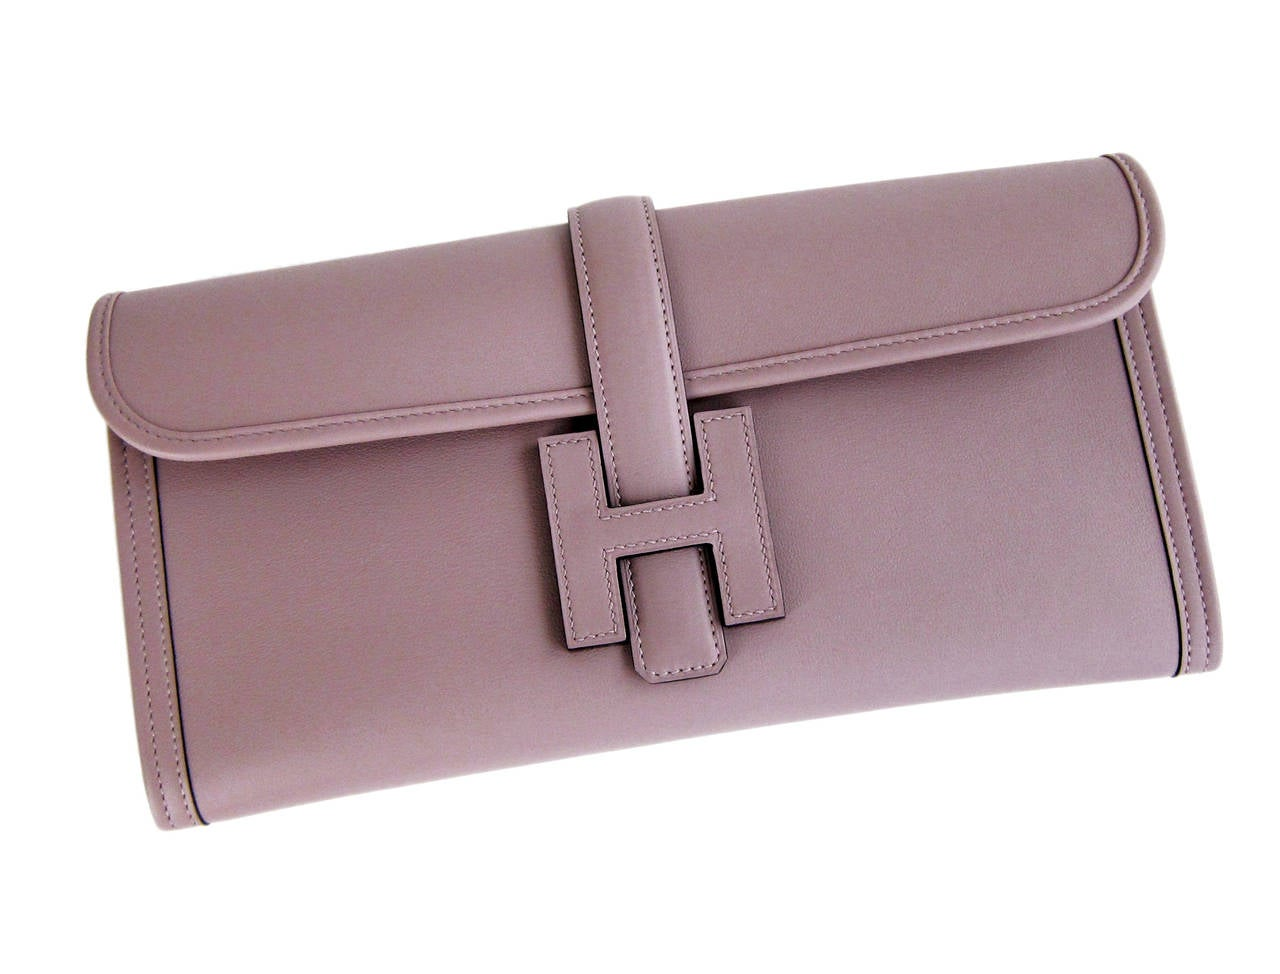 HERMES Glycine Lilac Jige Elan Clutch 29cm Chic